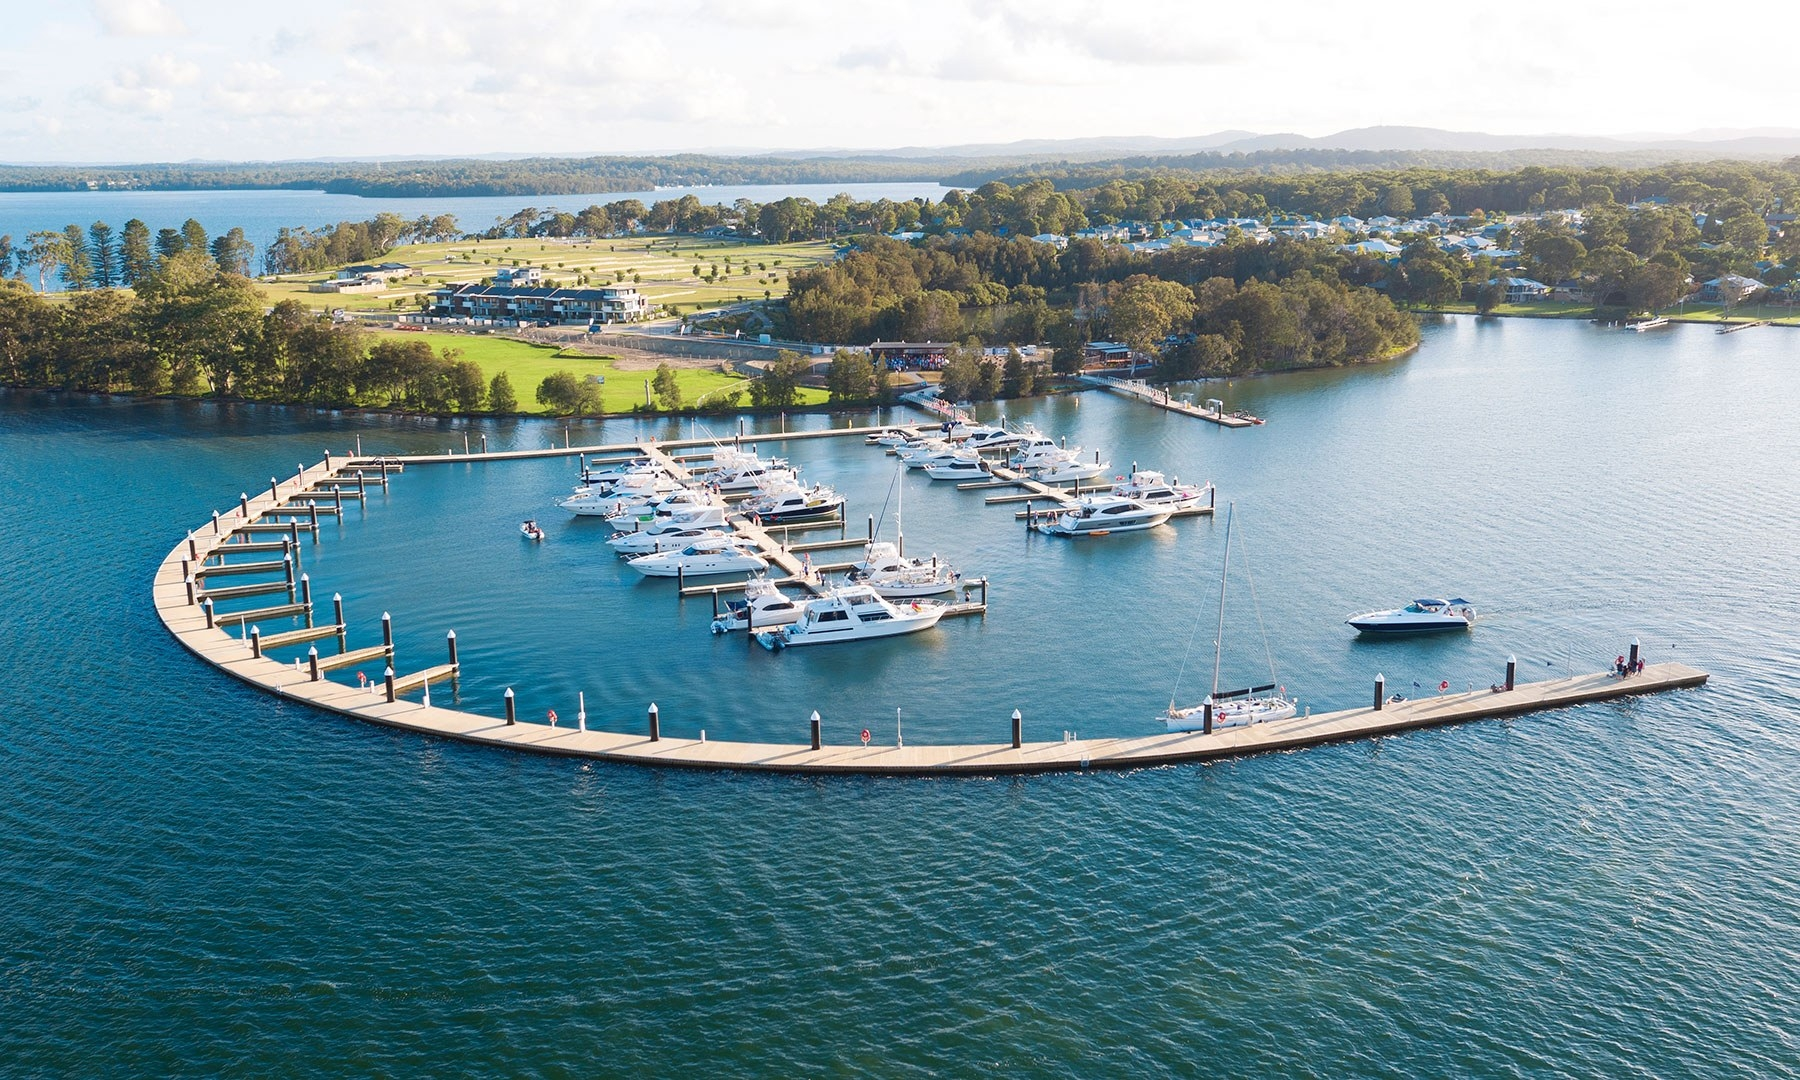 World Class Marina Facilities